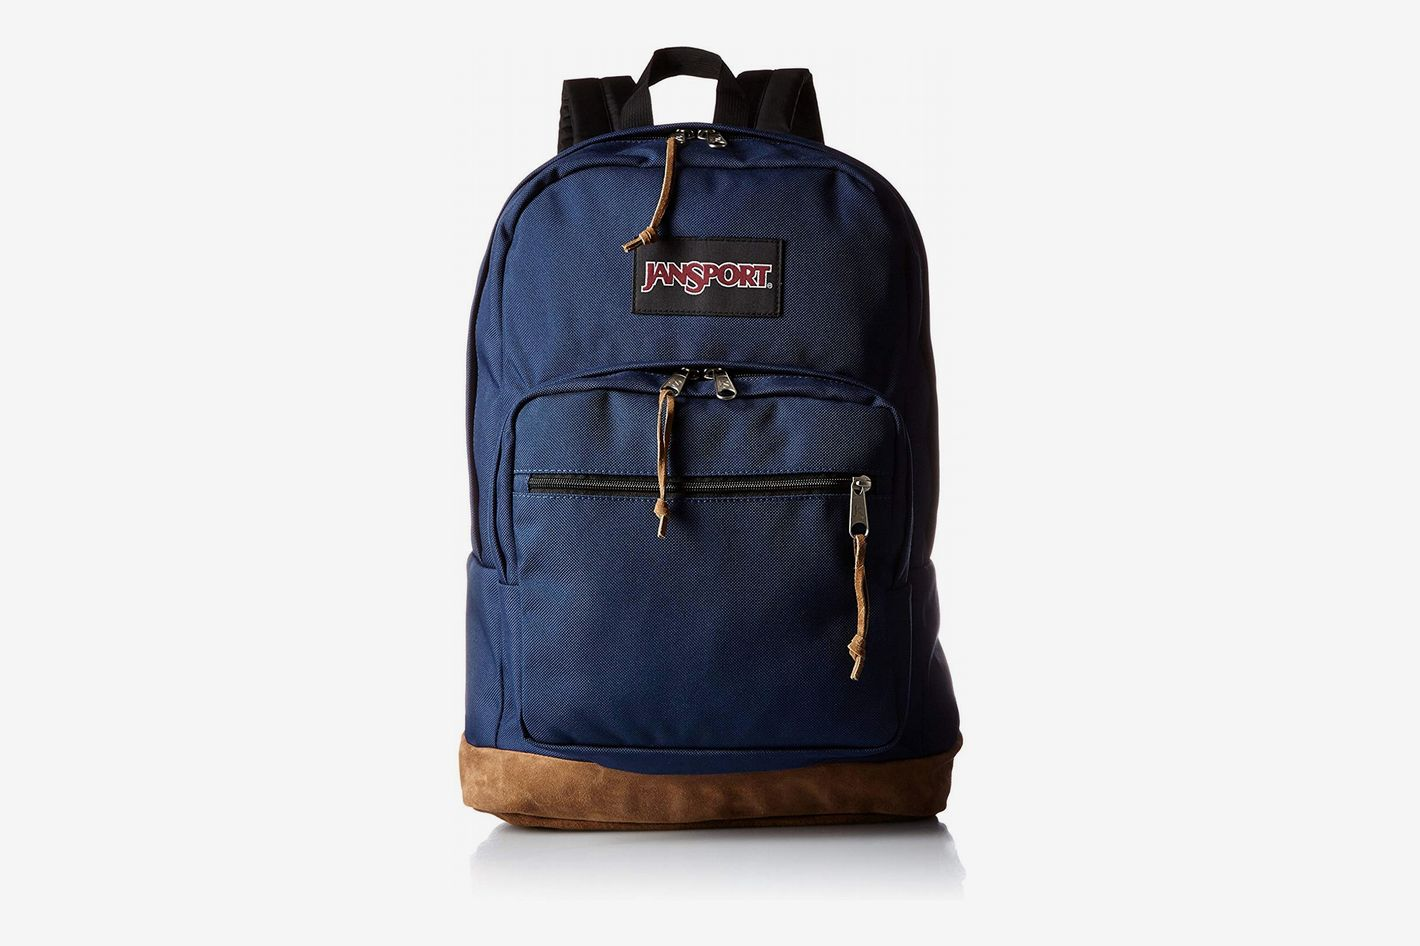 0225b87ab The 14 Best Laptop Backpacks on Amazon 2019